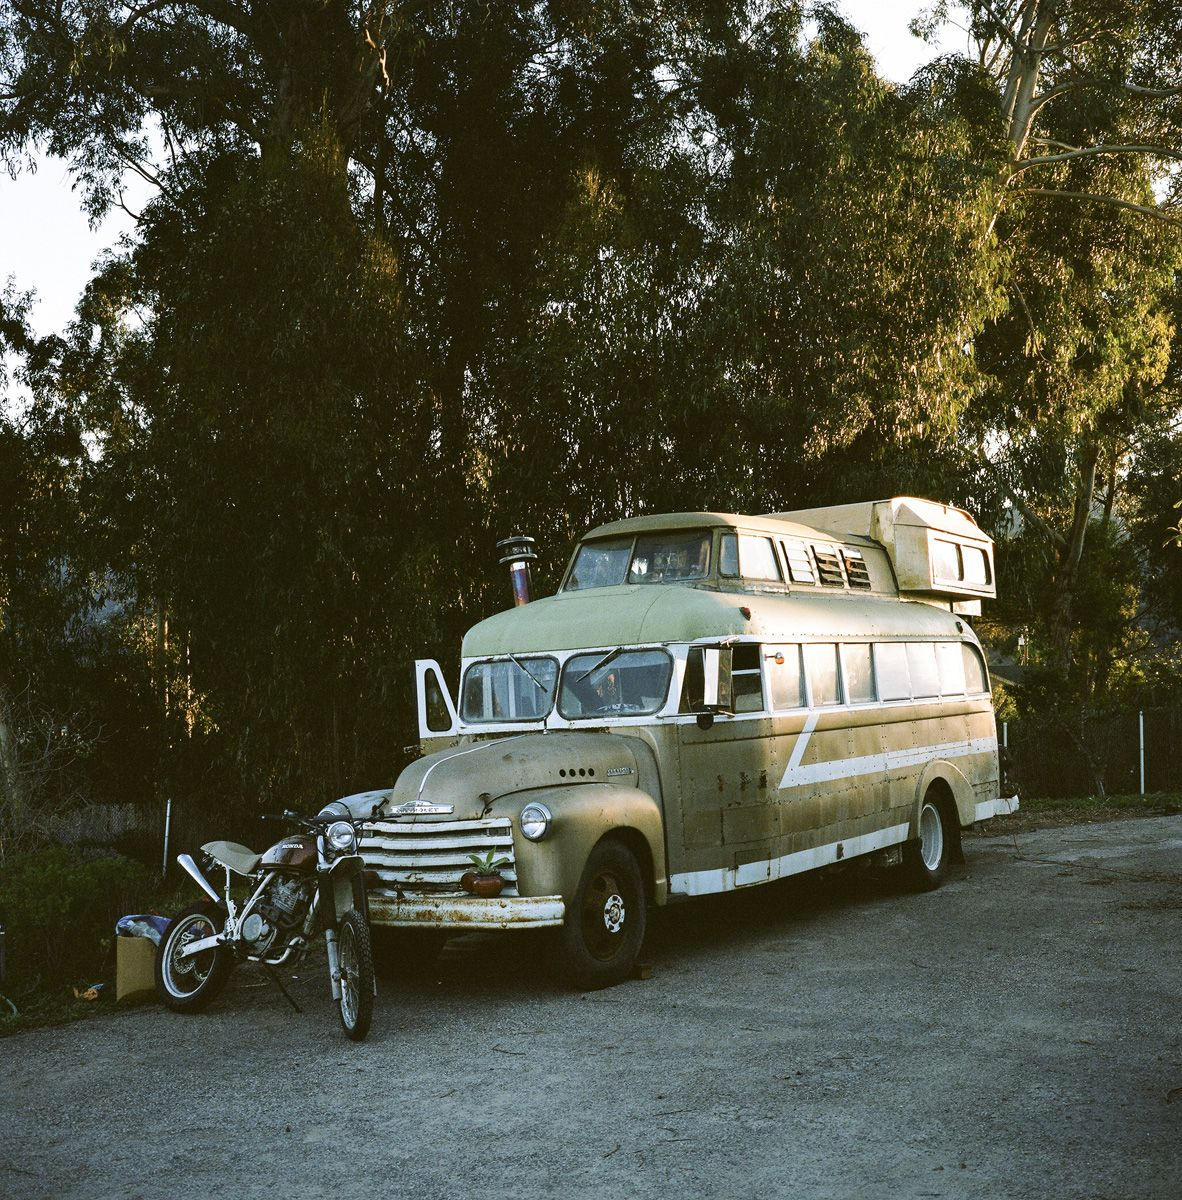 Pin By Bastian Dietz On Camping Traveling Vintage Camper Cool